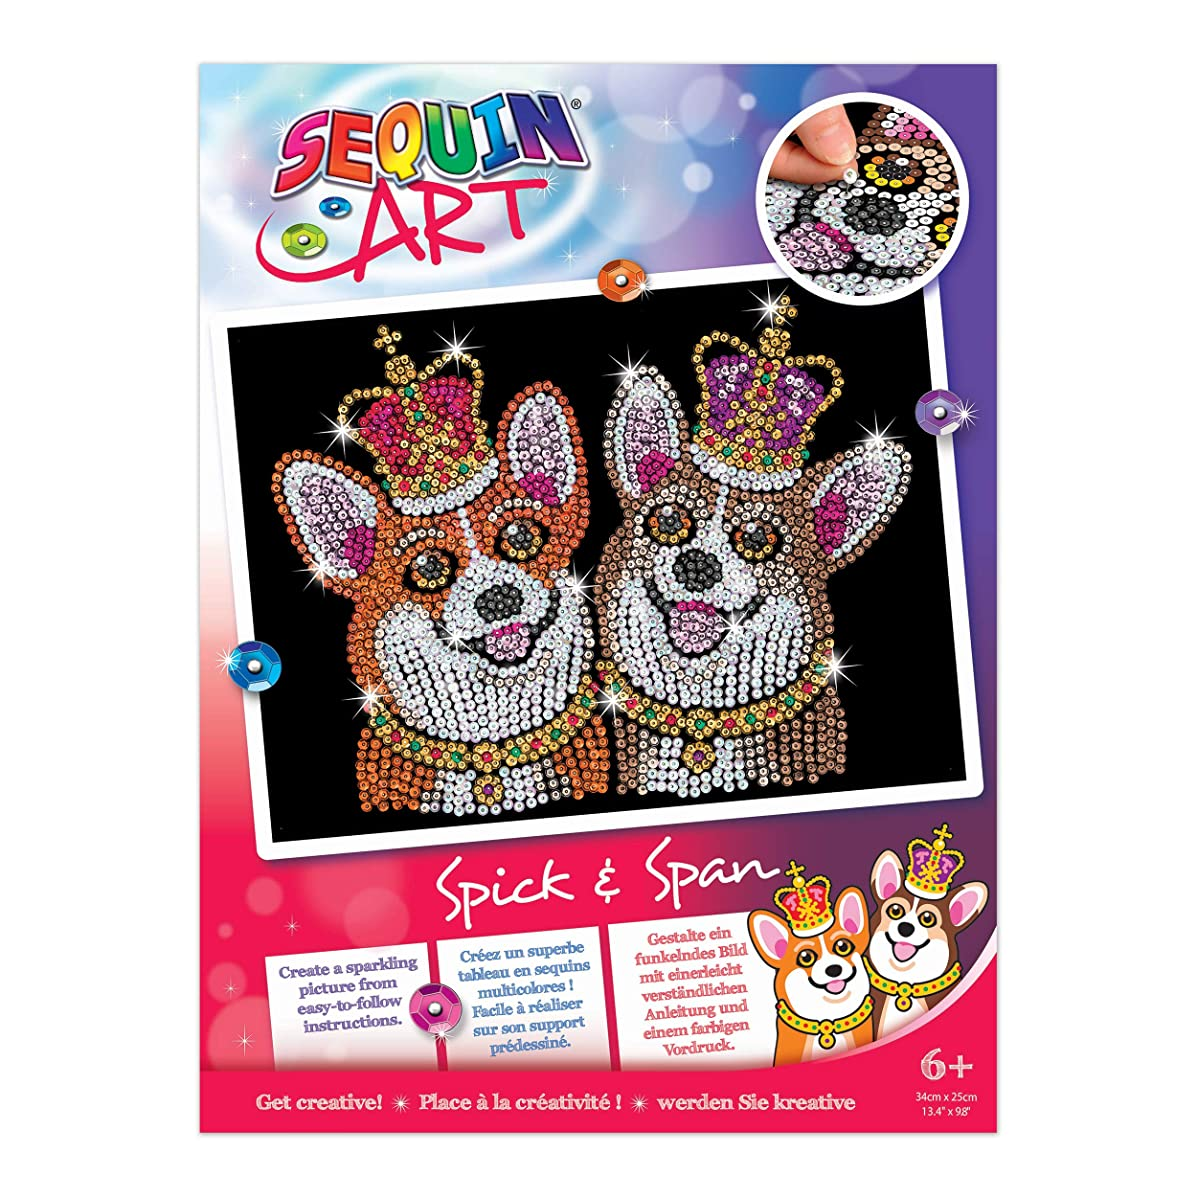 Sequin Art Red SPICK & Span The CORGIES Sparkling Arts and Crafts Kit